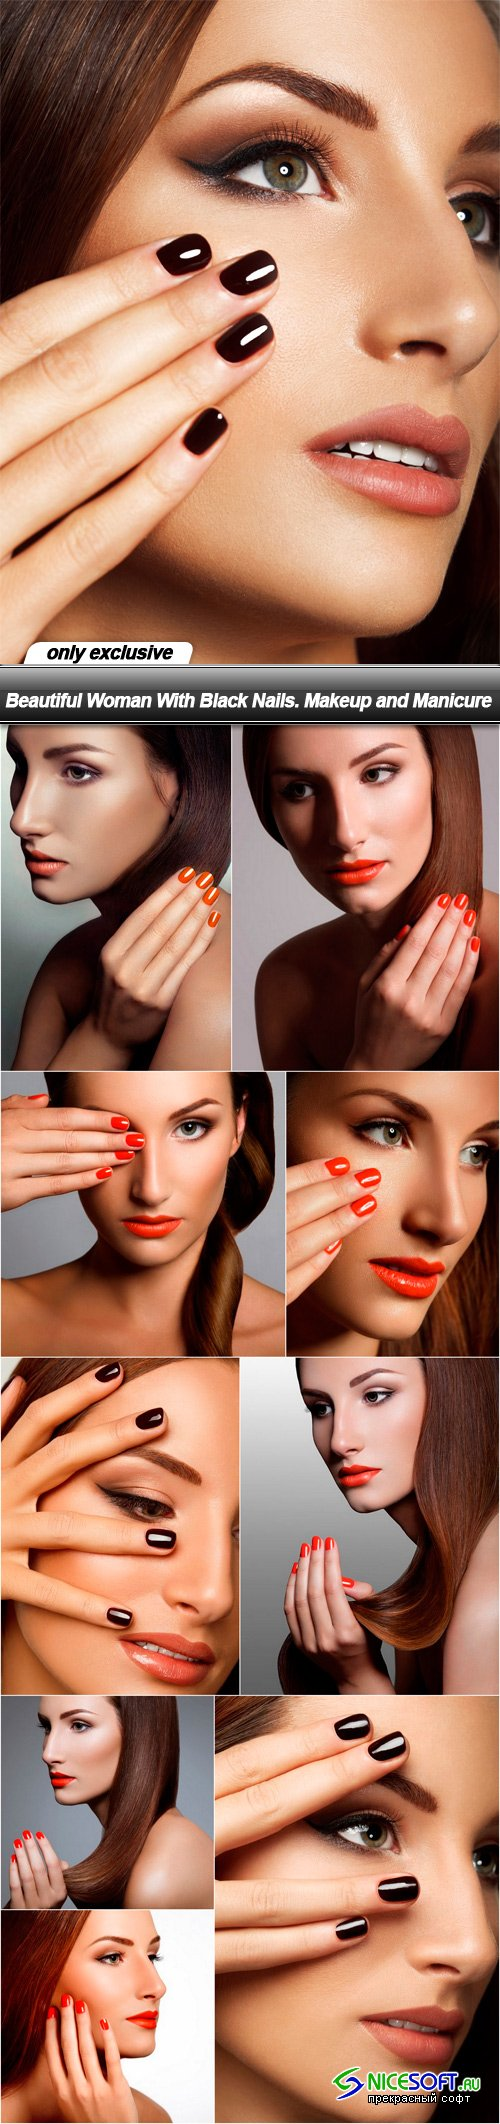 Beautiful Woman With Black Nails. Makeup and Manicure